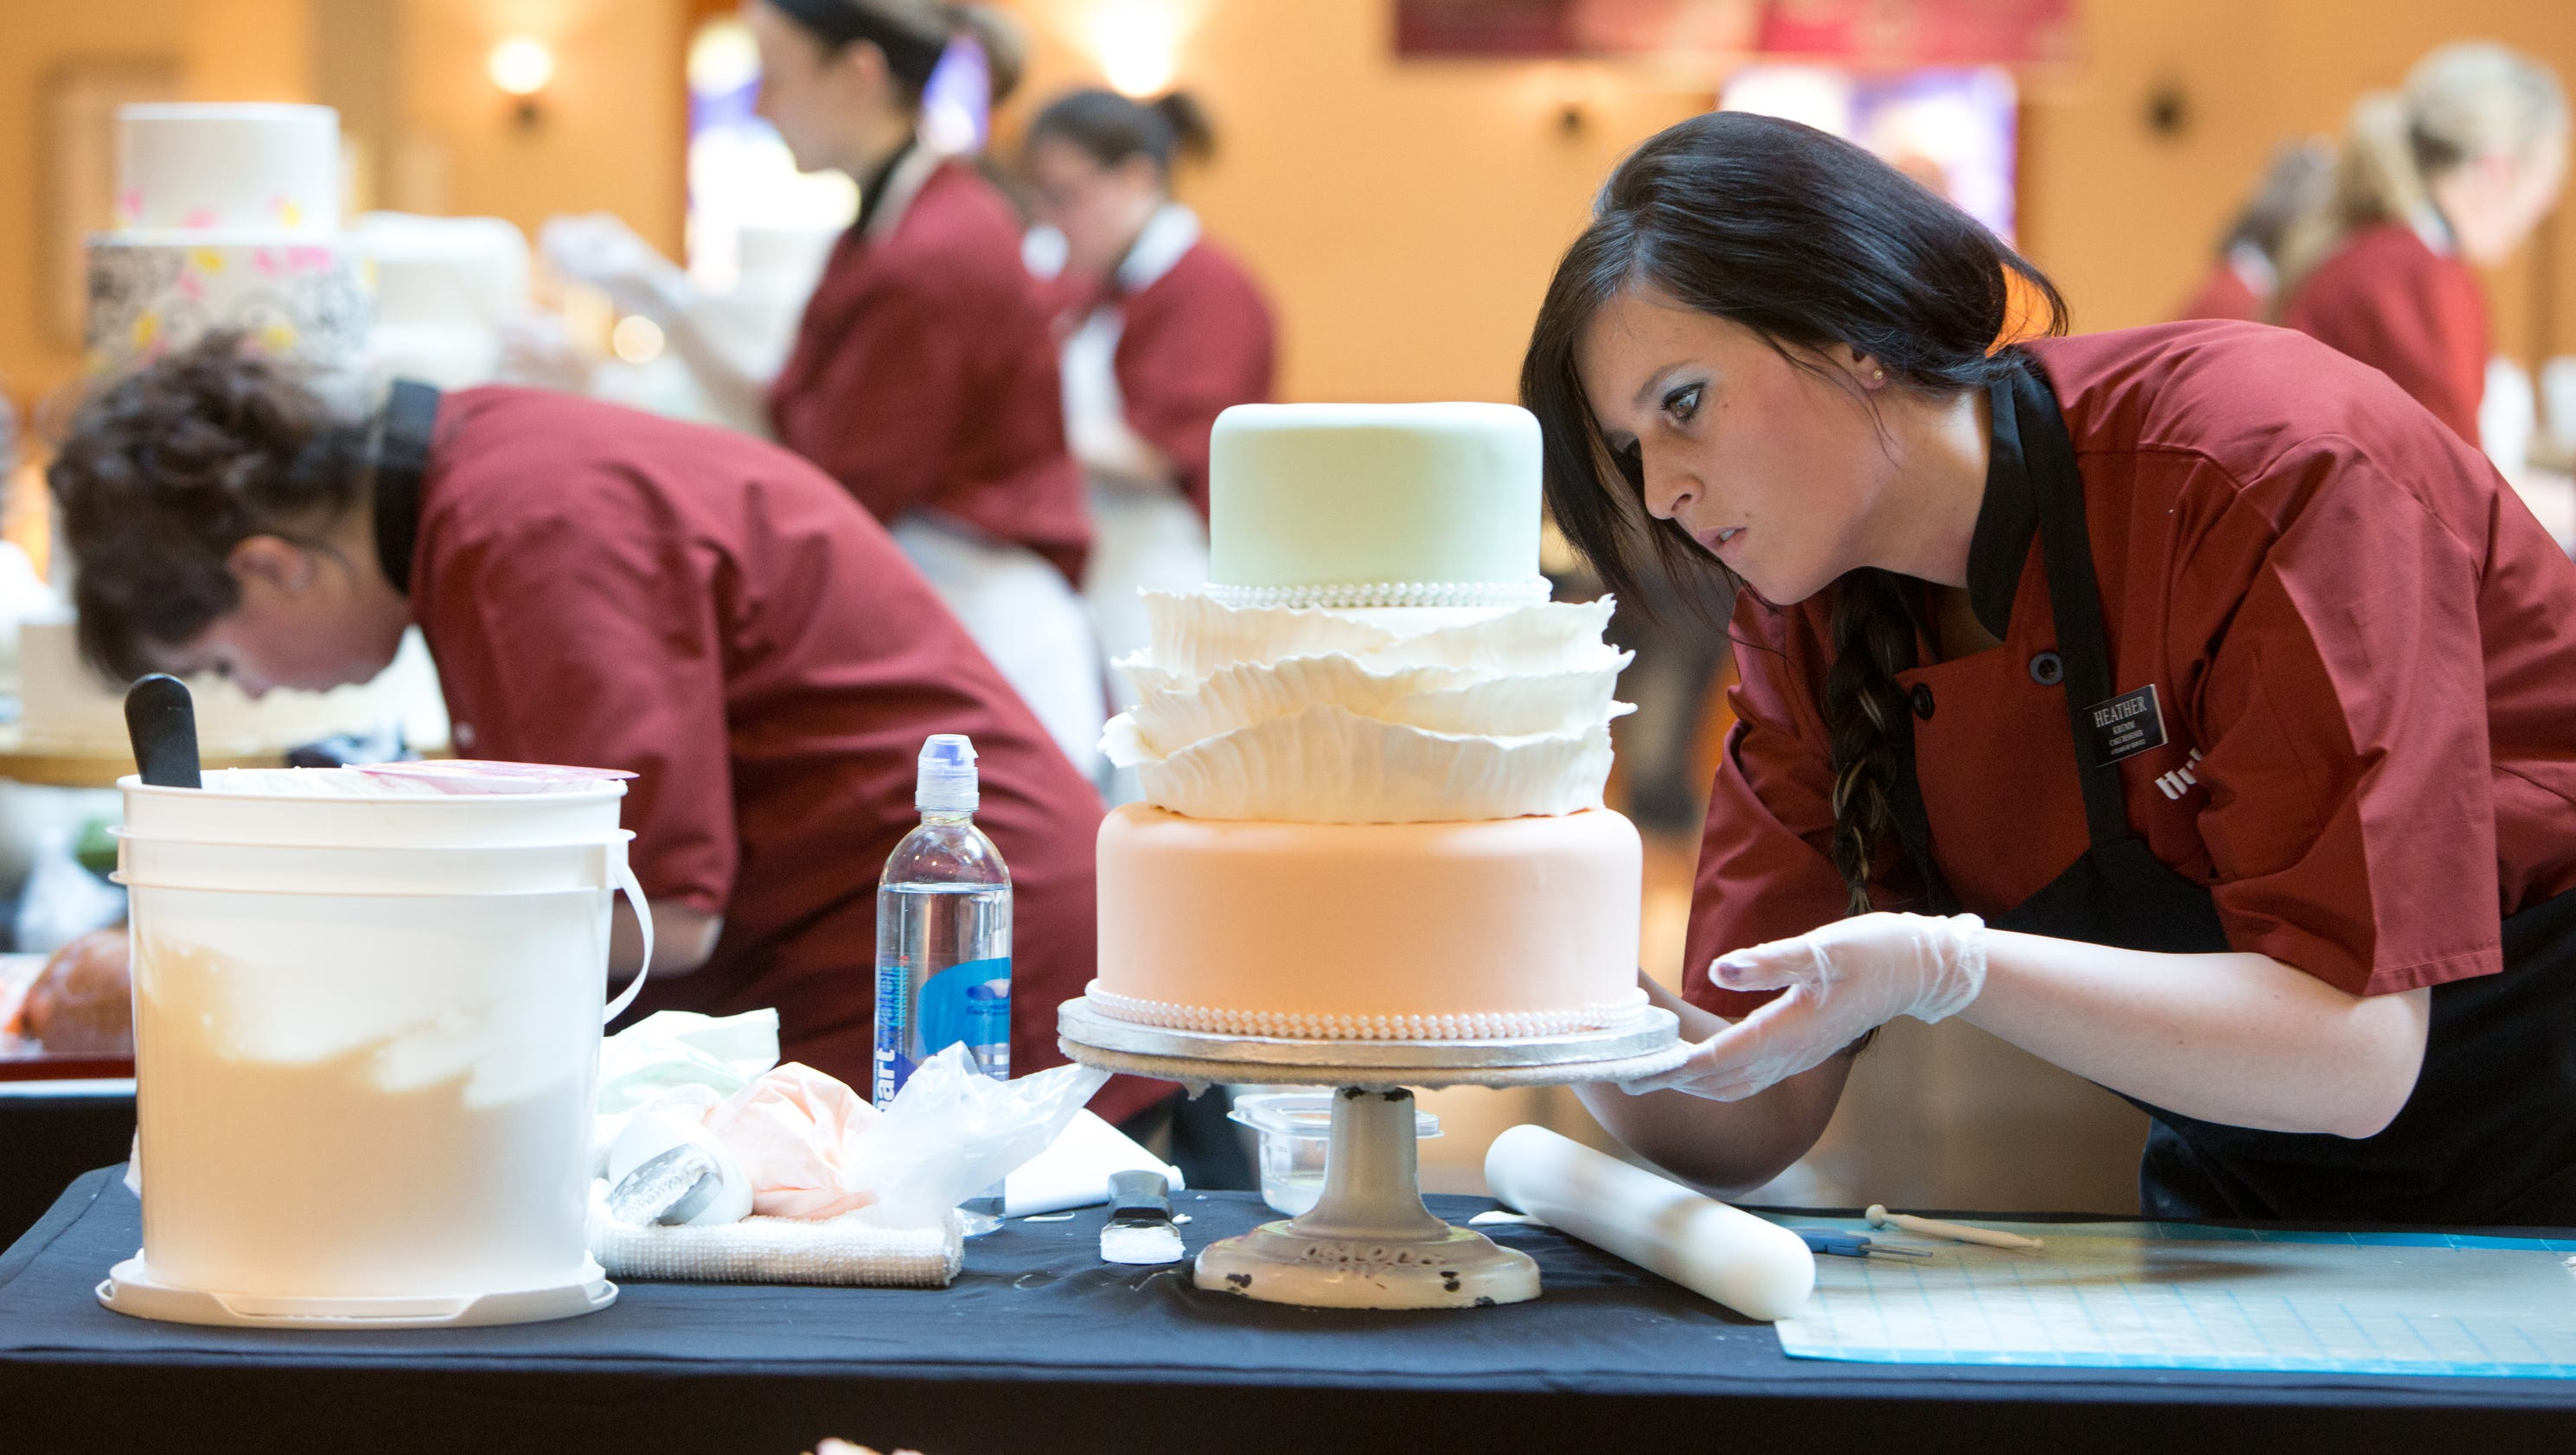 Cake Decorating Competition Show : 16 Photos: 2015 Hy-Vee Cake Decorating Contest